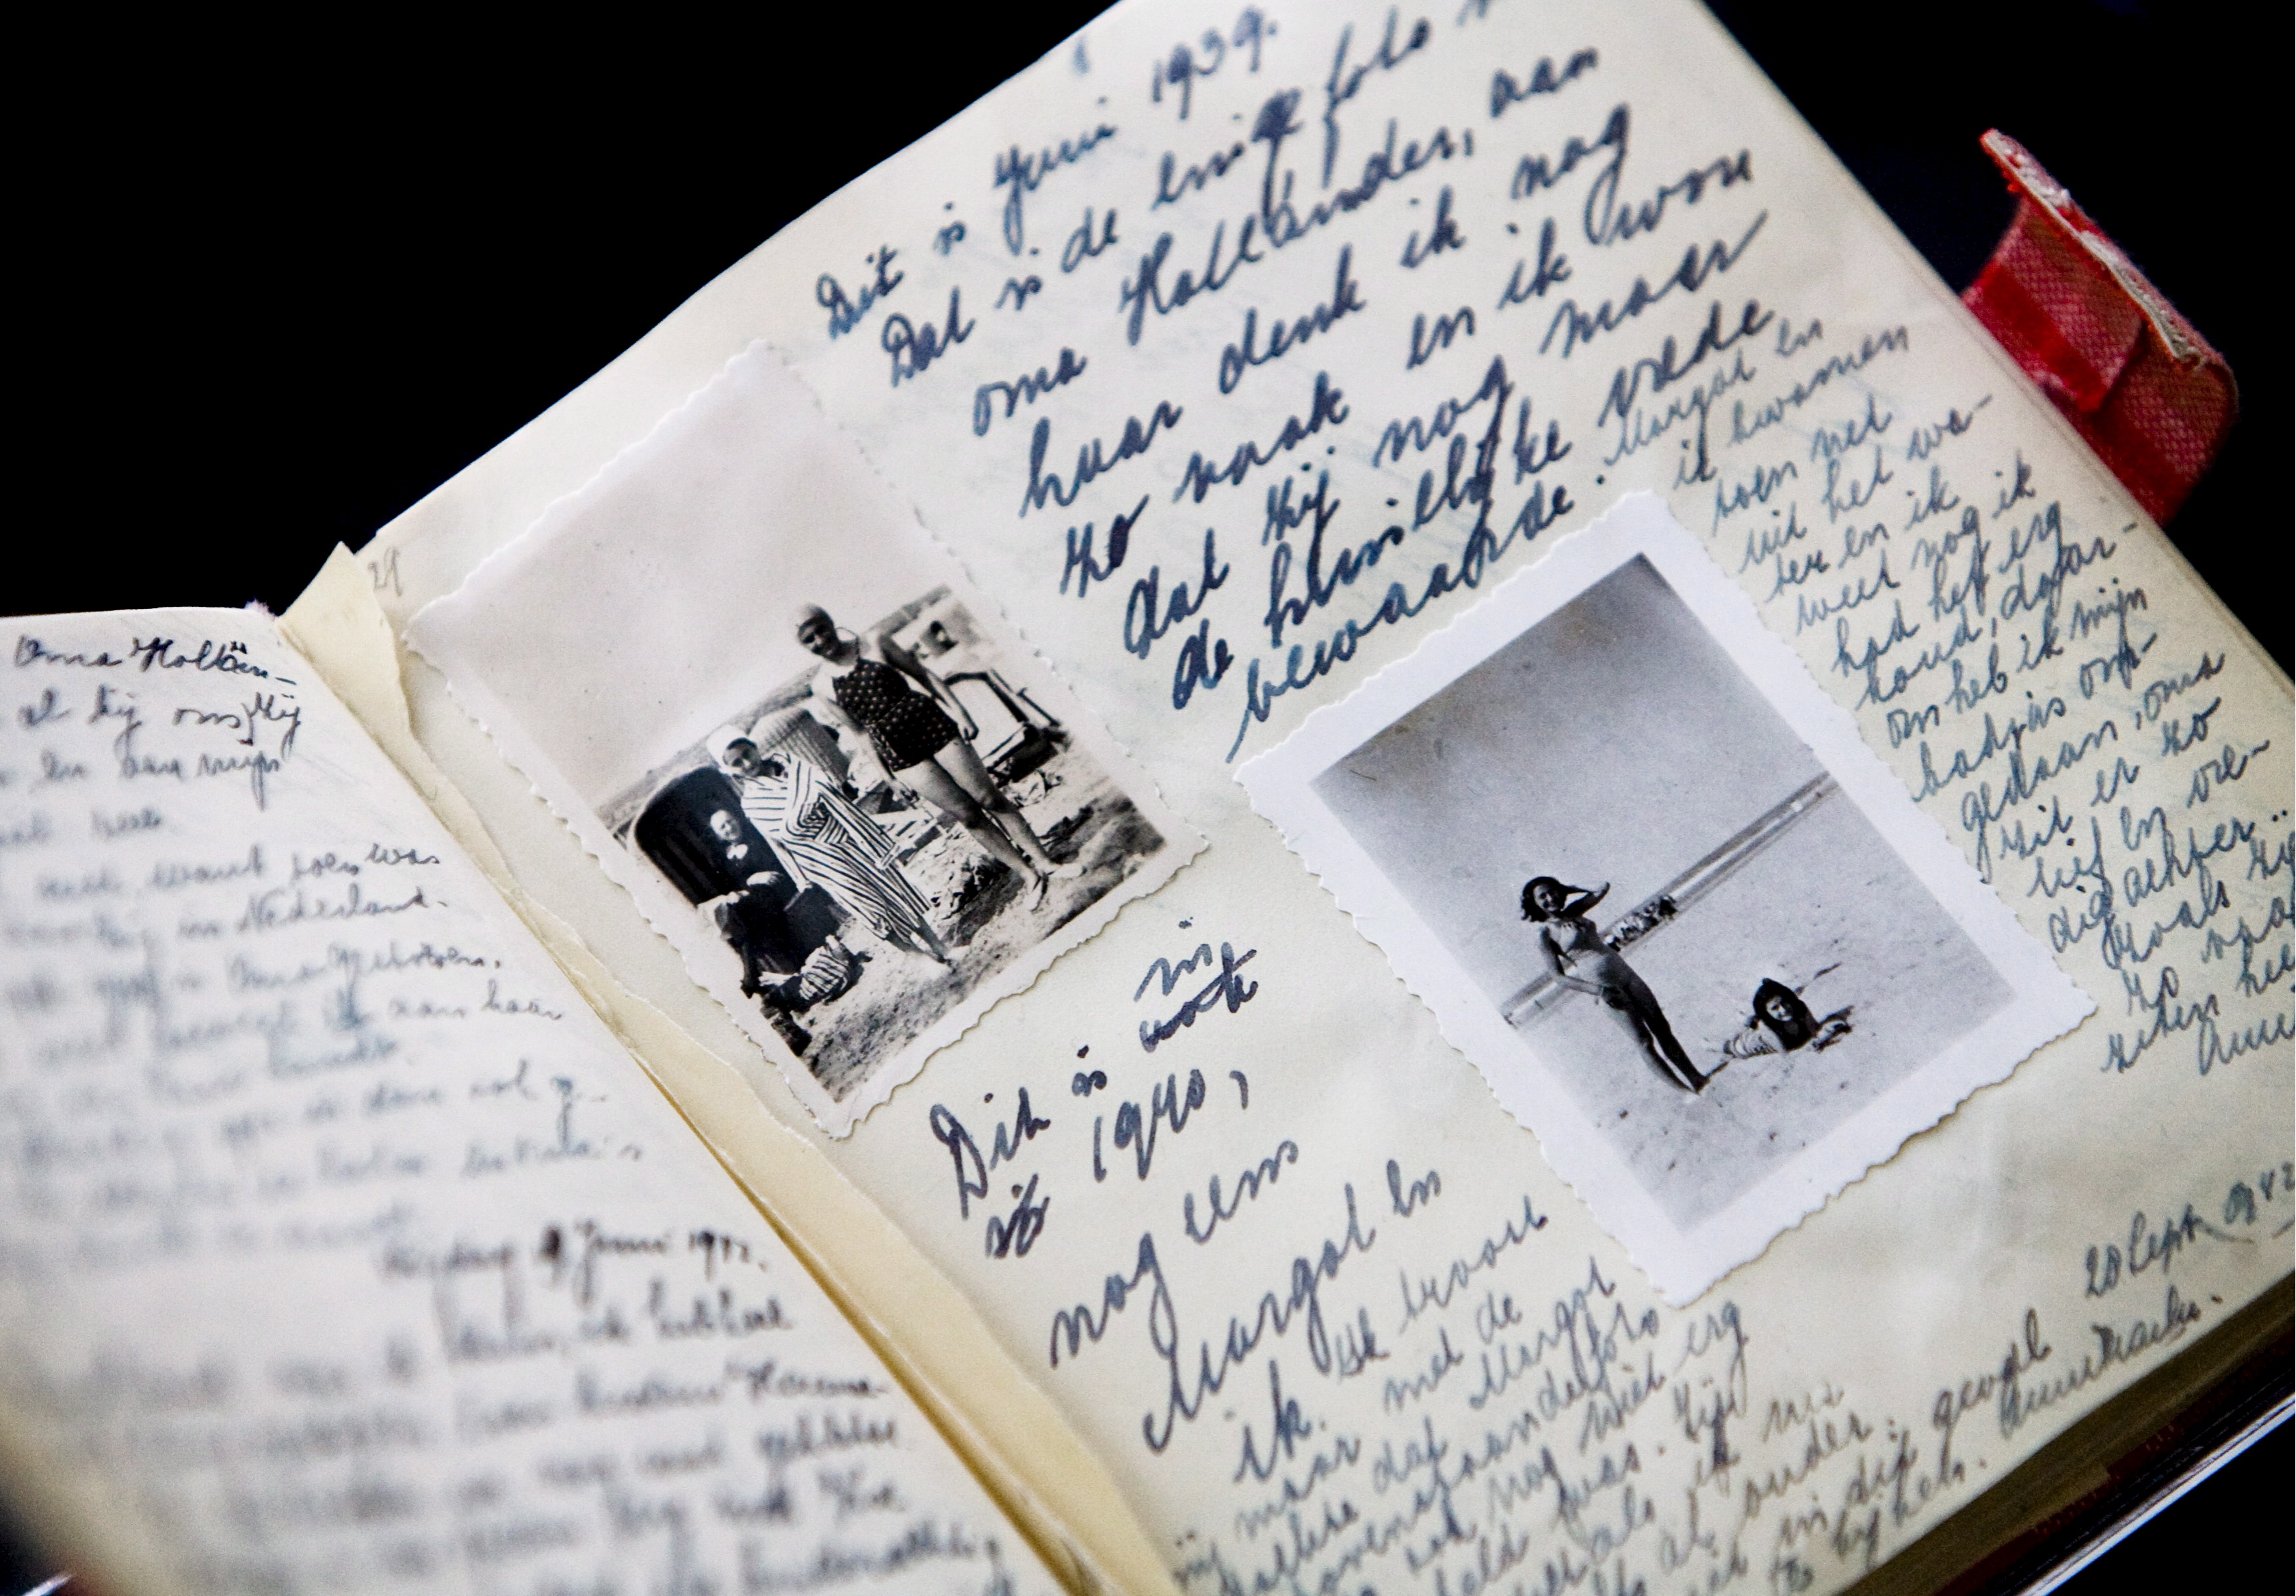 Anne Frank's Diary Now Has Co-Author, Extended Copyright ...